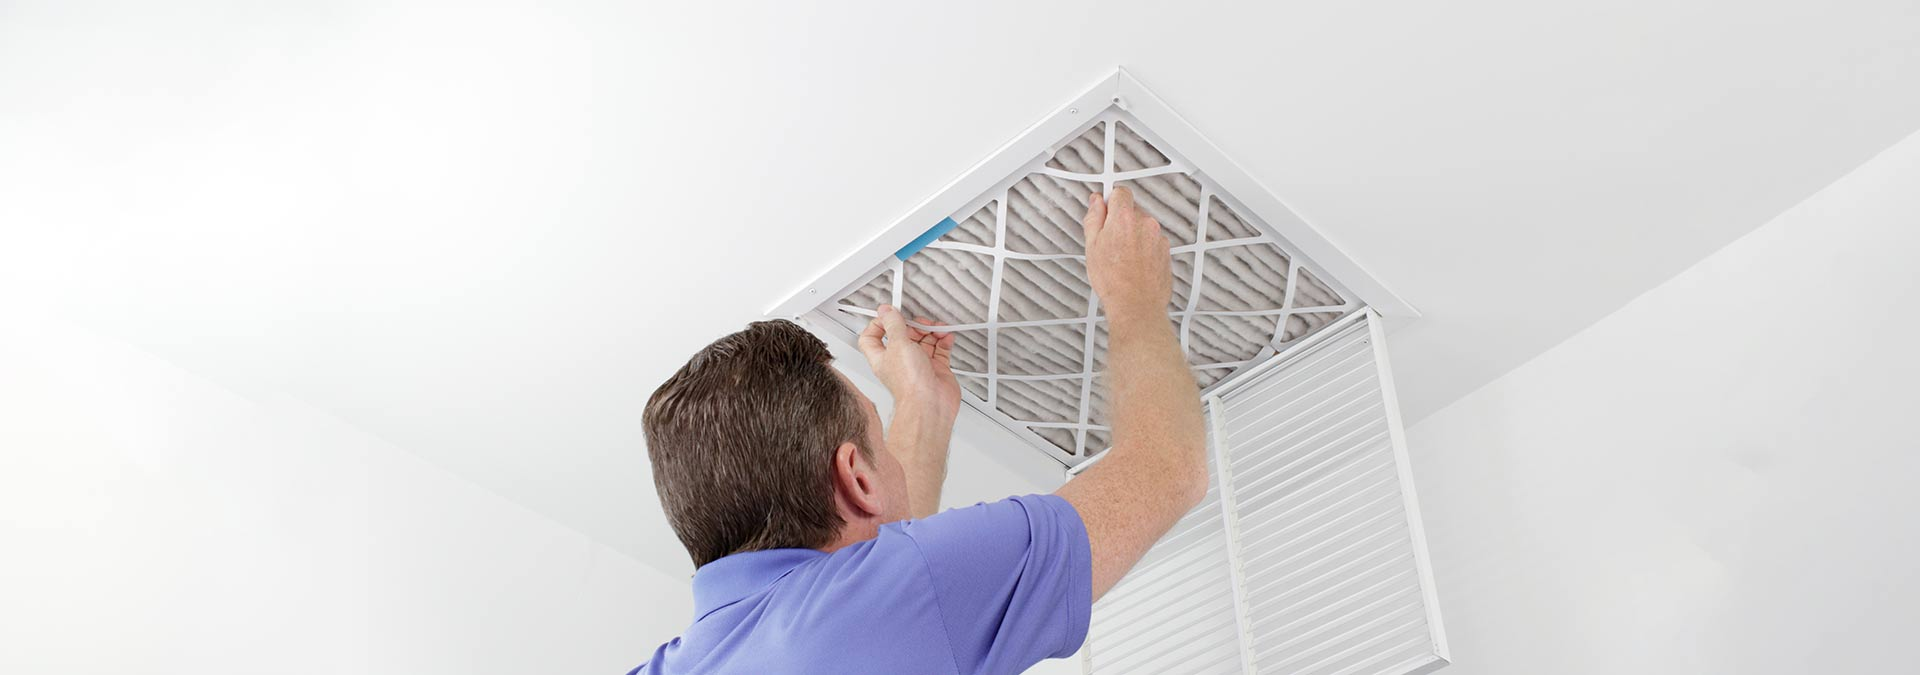 Residential Air Duct Cleaning Air Duct Cleaning Nyc